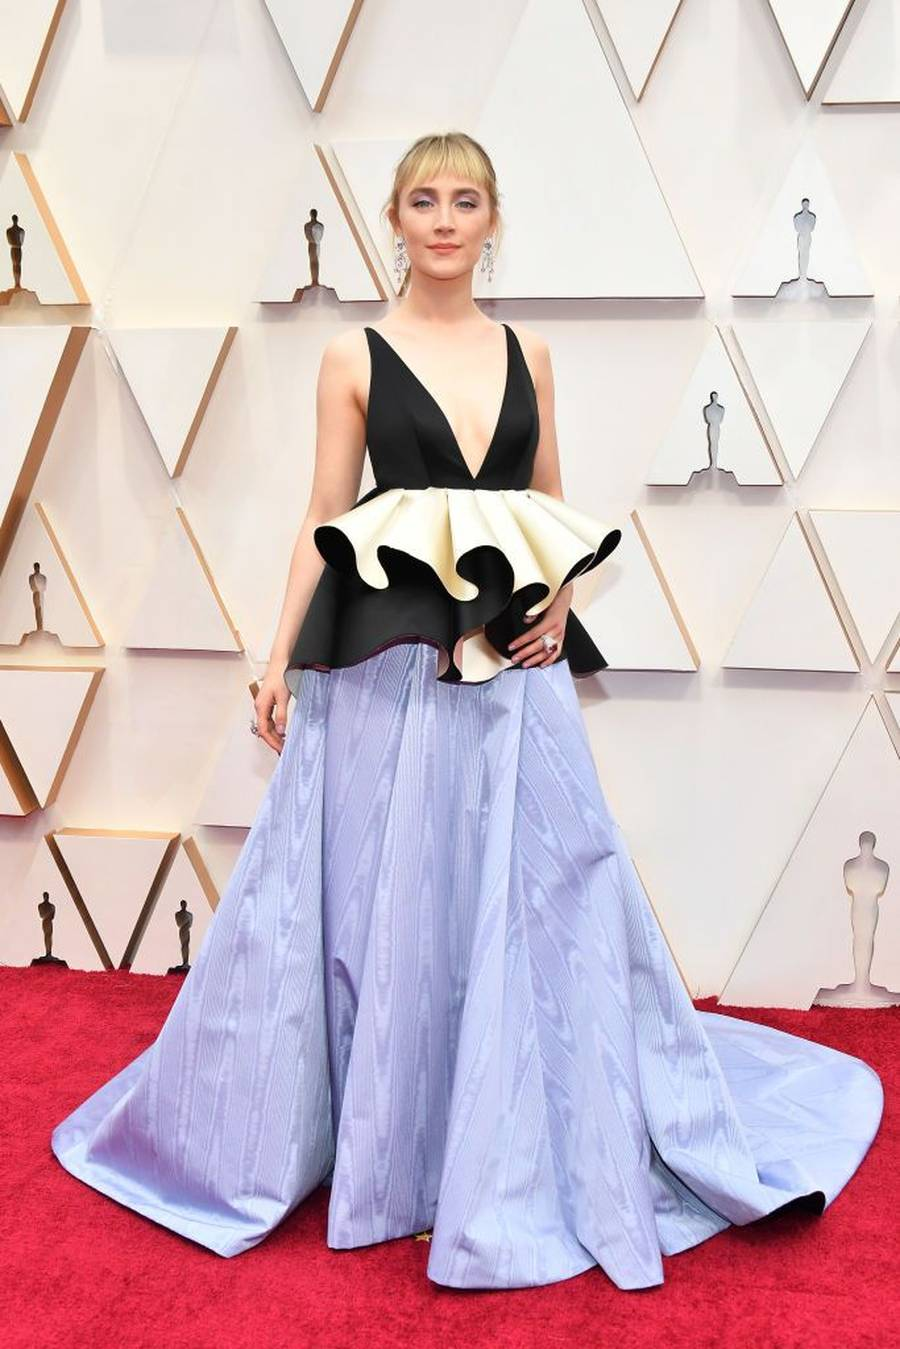 HOLLYWOOD, CALIFORNIA - FEBRUARY 09: Saoirse Ronan attends the 92nd Annual Academy Awards at Hollywood and Highland on February 09, 2020 in Hollywood, California. (Photo by Amy Sussman/Getty Images)